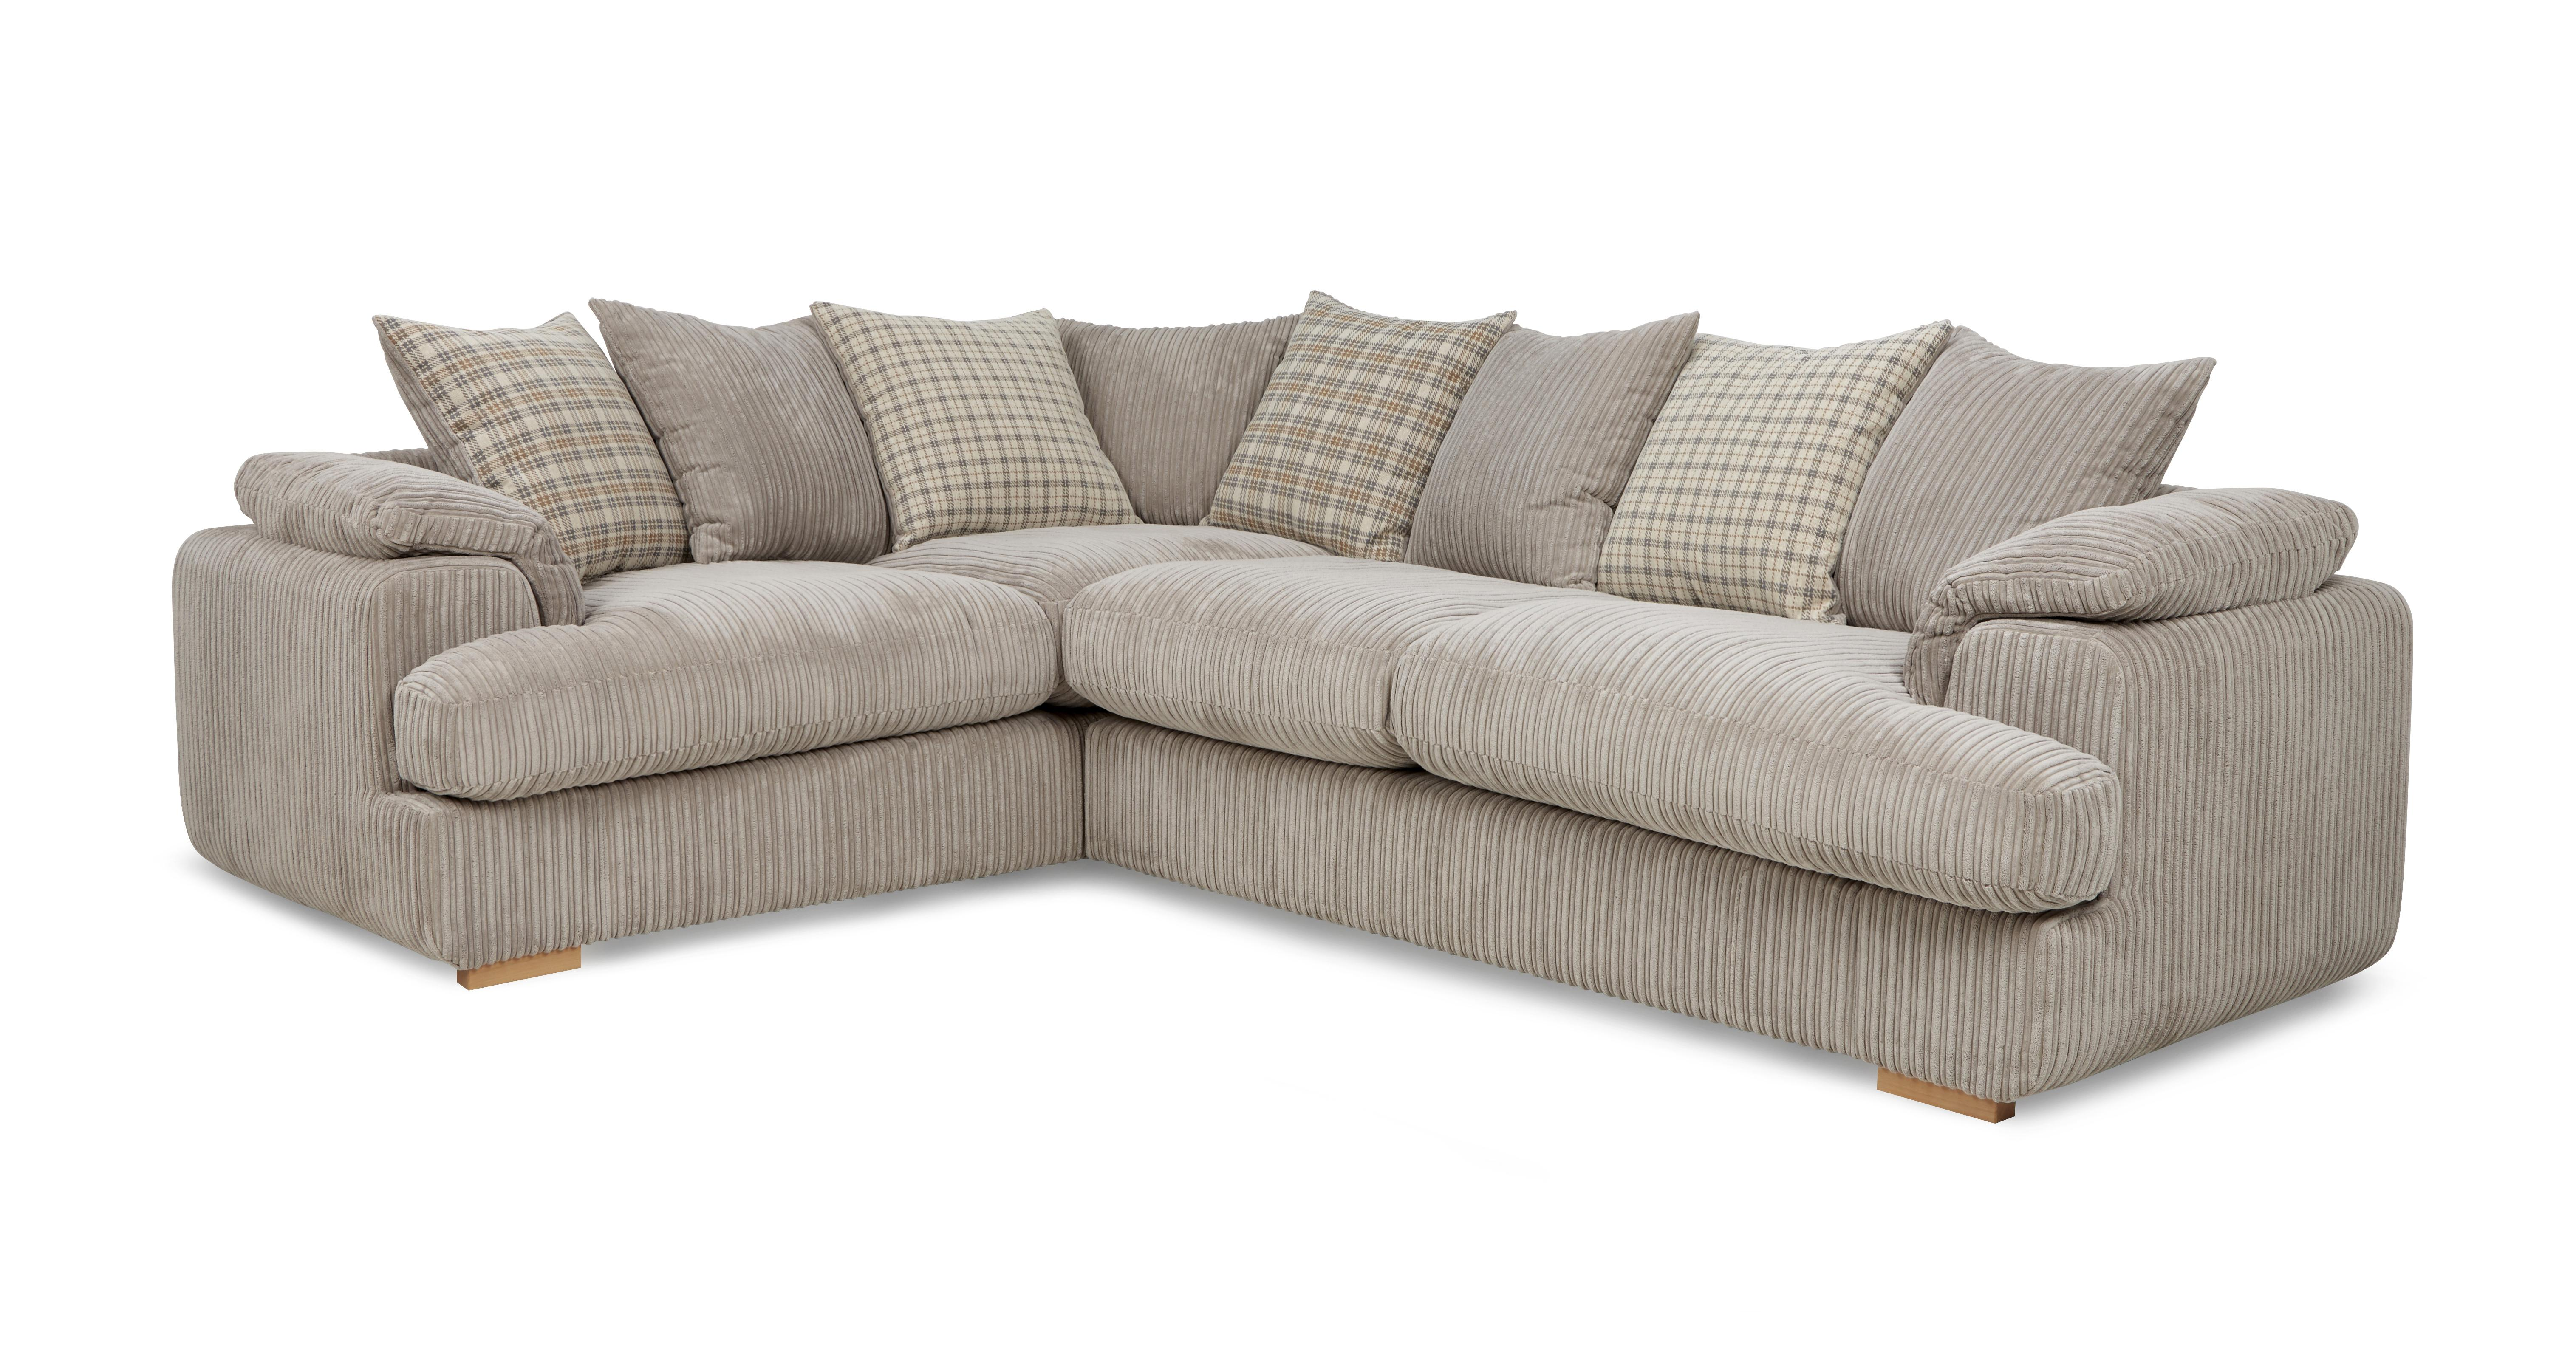 Celine Right Arm Facing 2 Seater Pillow Back Corner Sofa Celine Alternative  | DFS